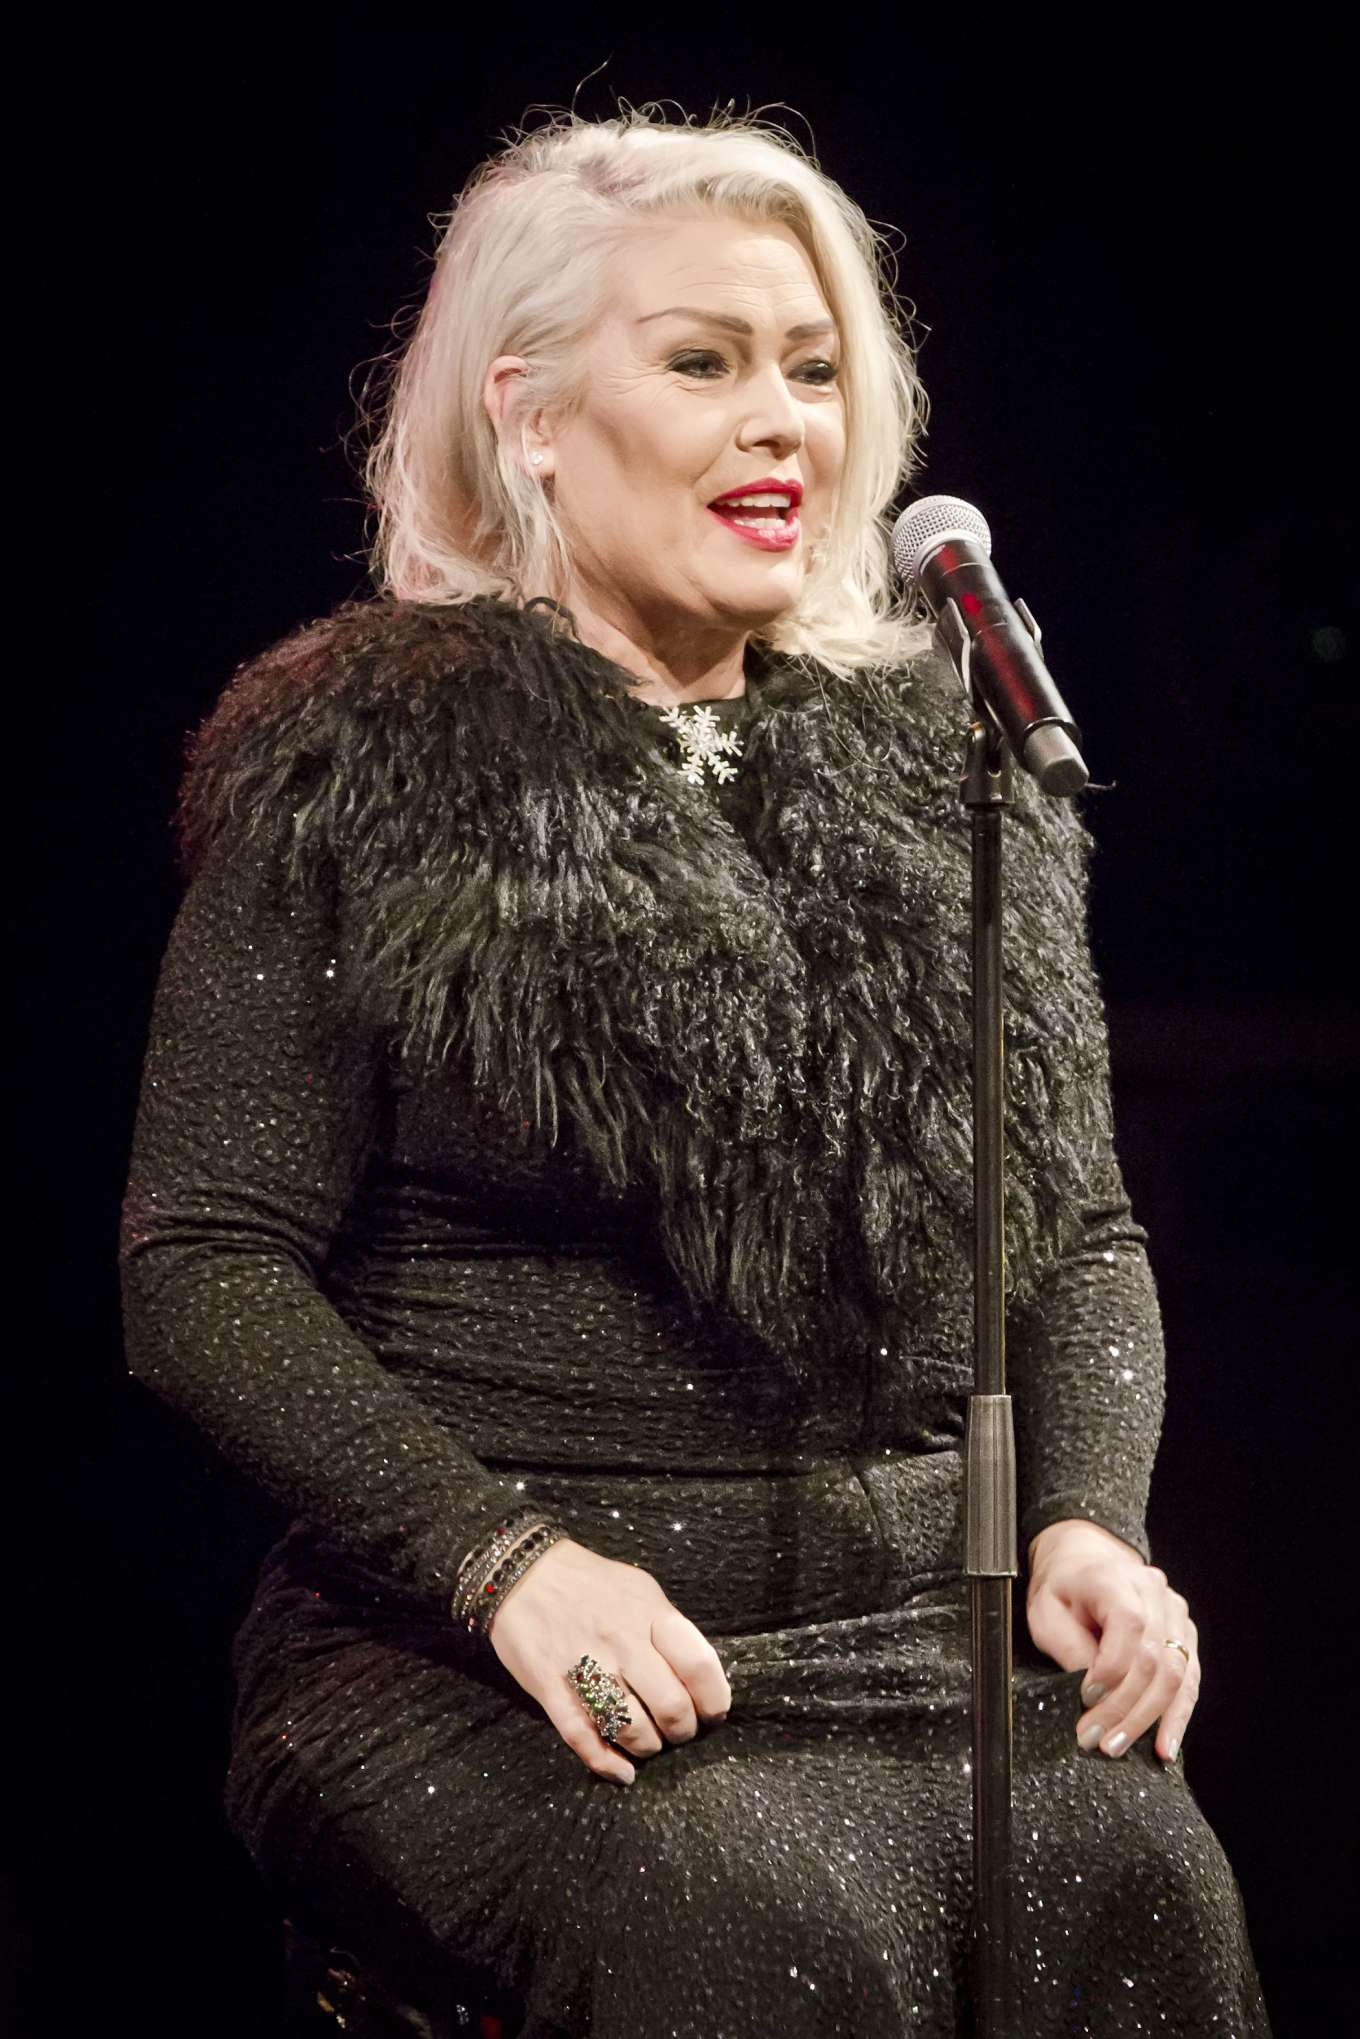 Kim Wilde 2019 : Kim Wilde – Performs Live During a Concert-12